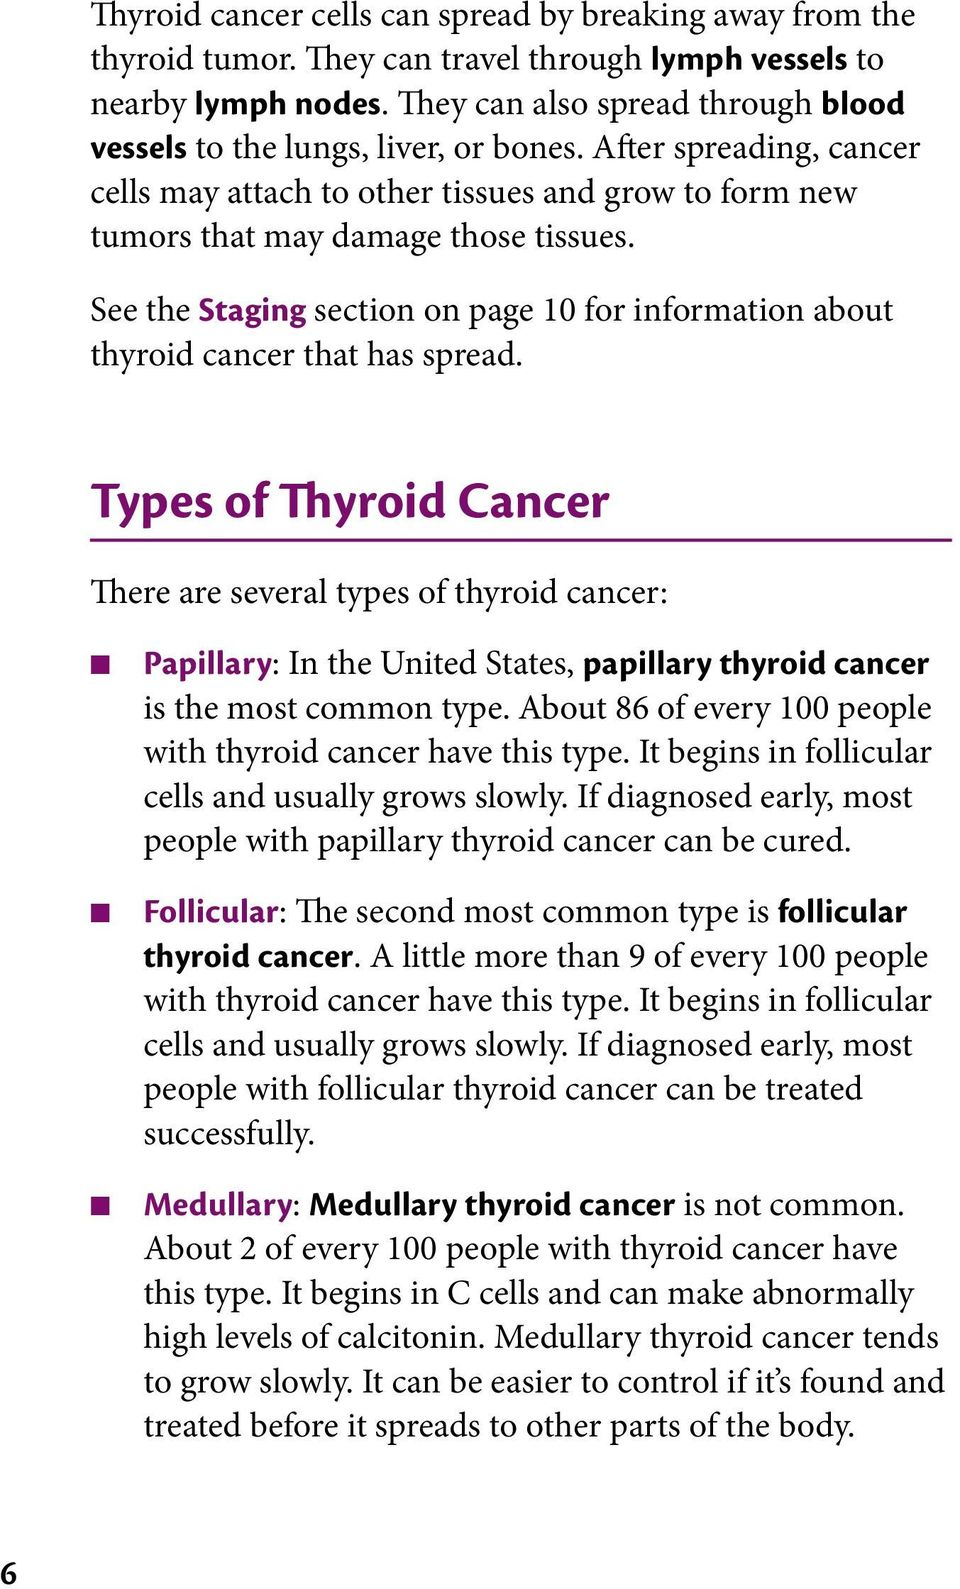 See the Staging section on page 10 for information about thyroid cancer that has spread.